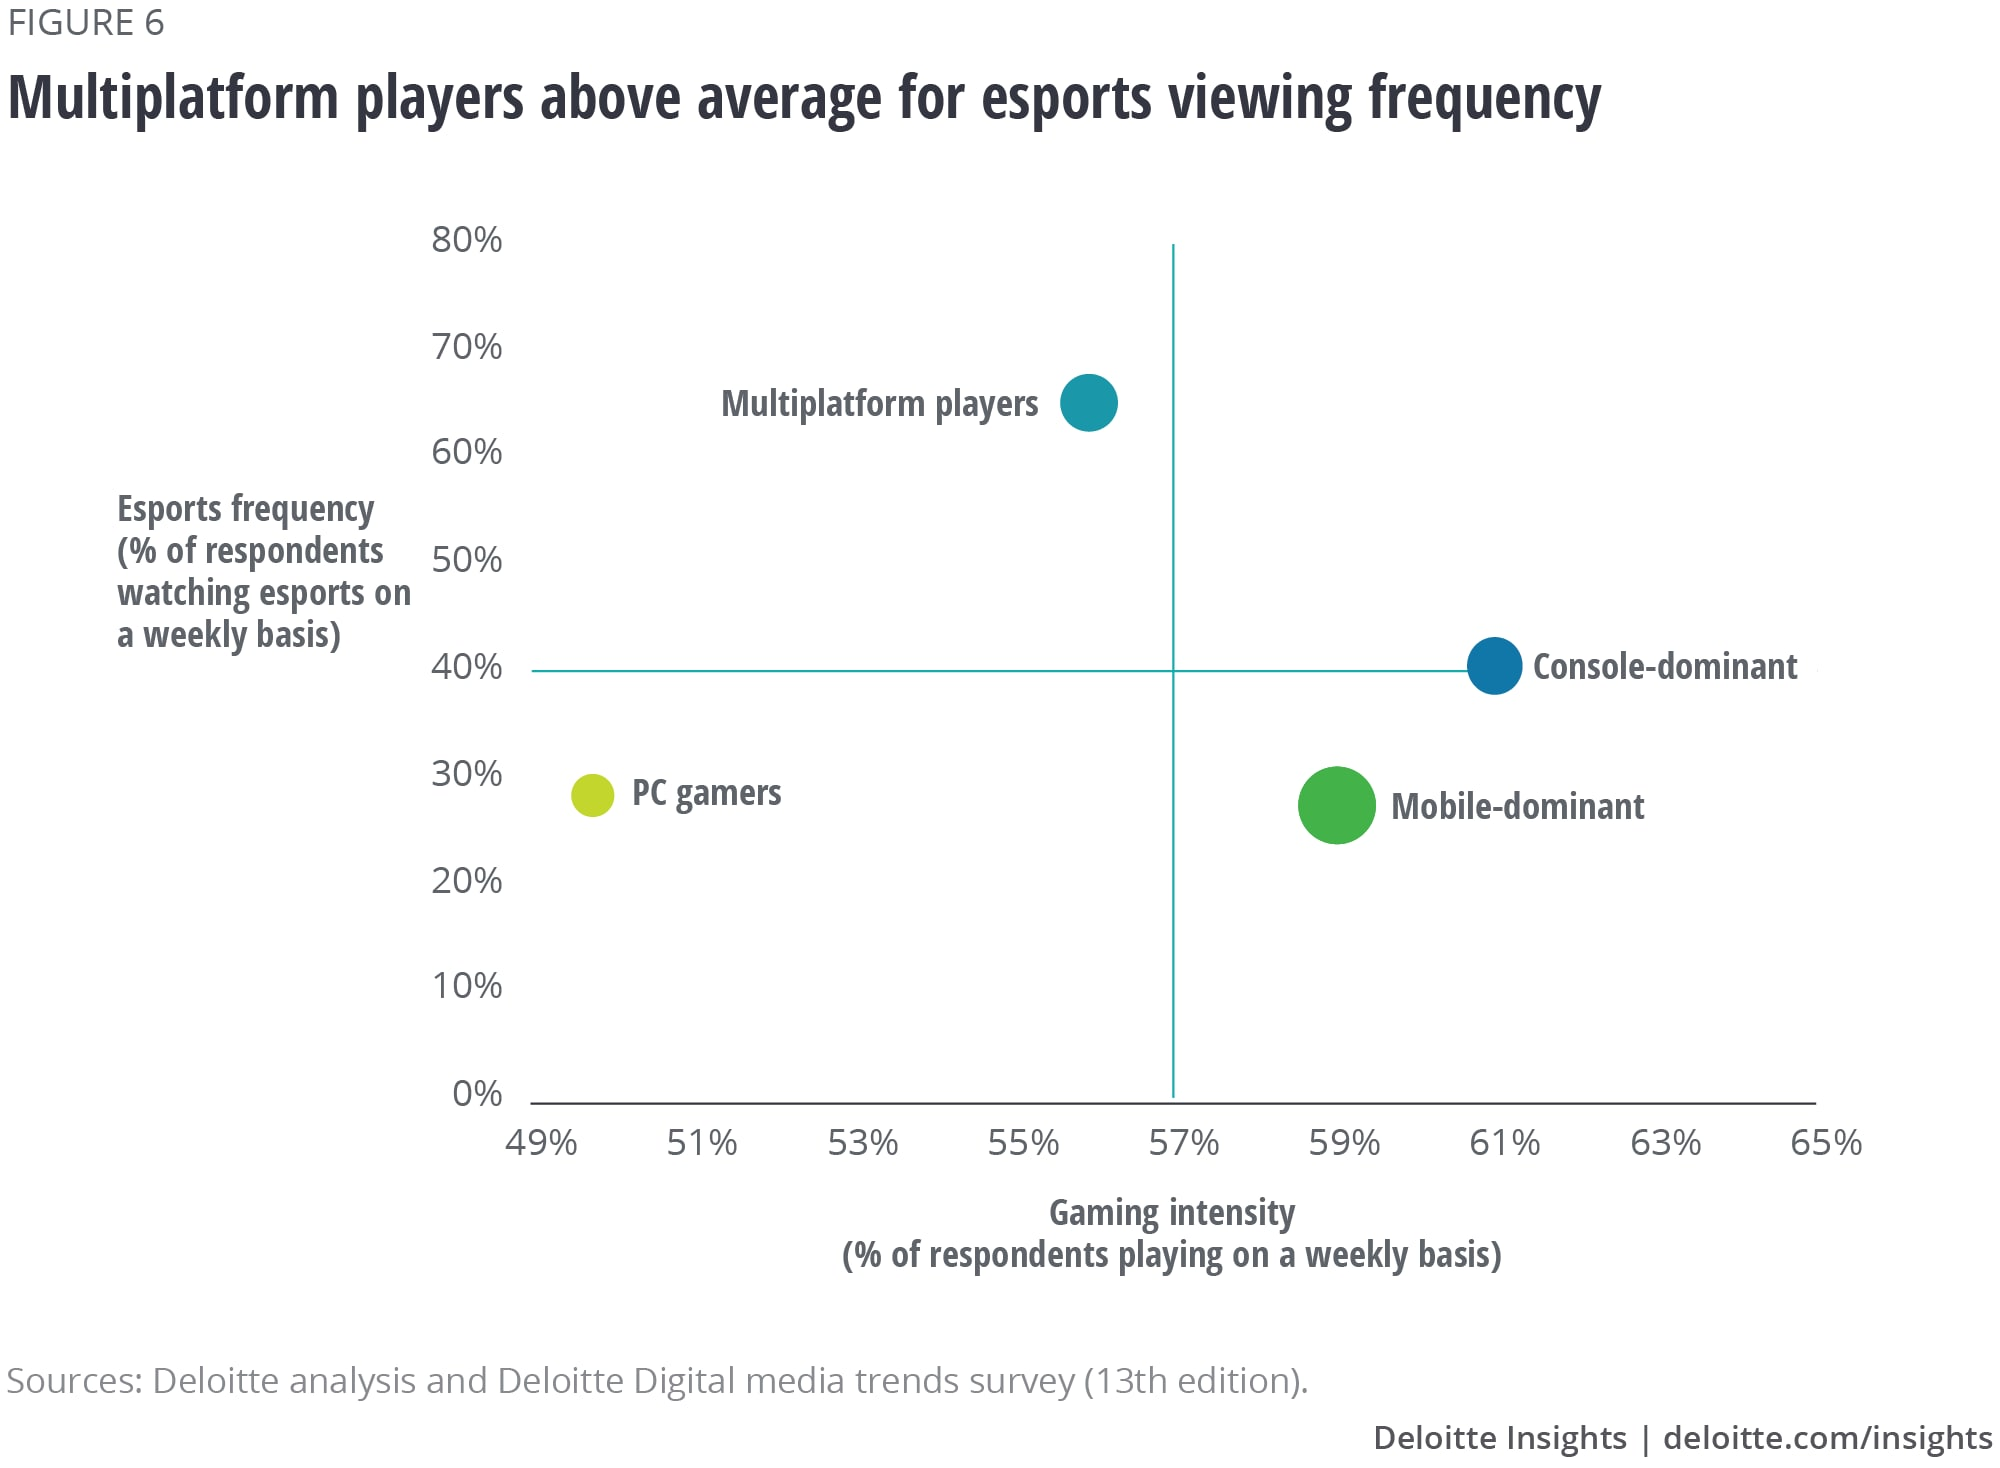 Multiplatform players above average for esports viewing frequency